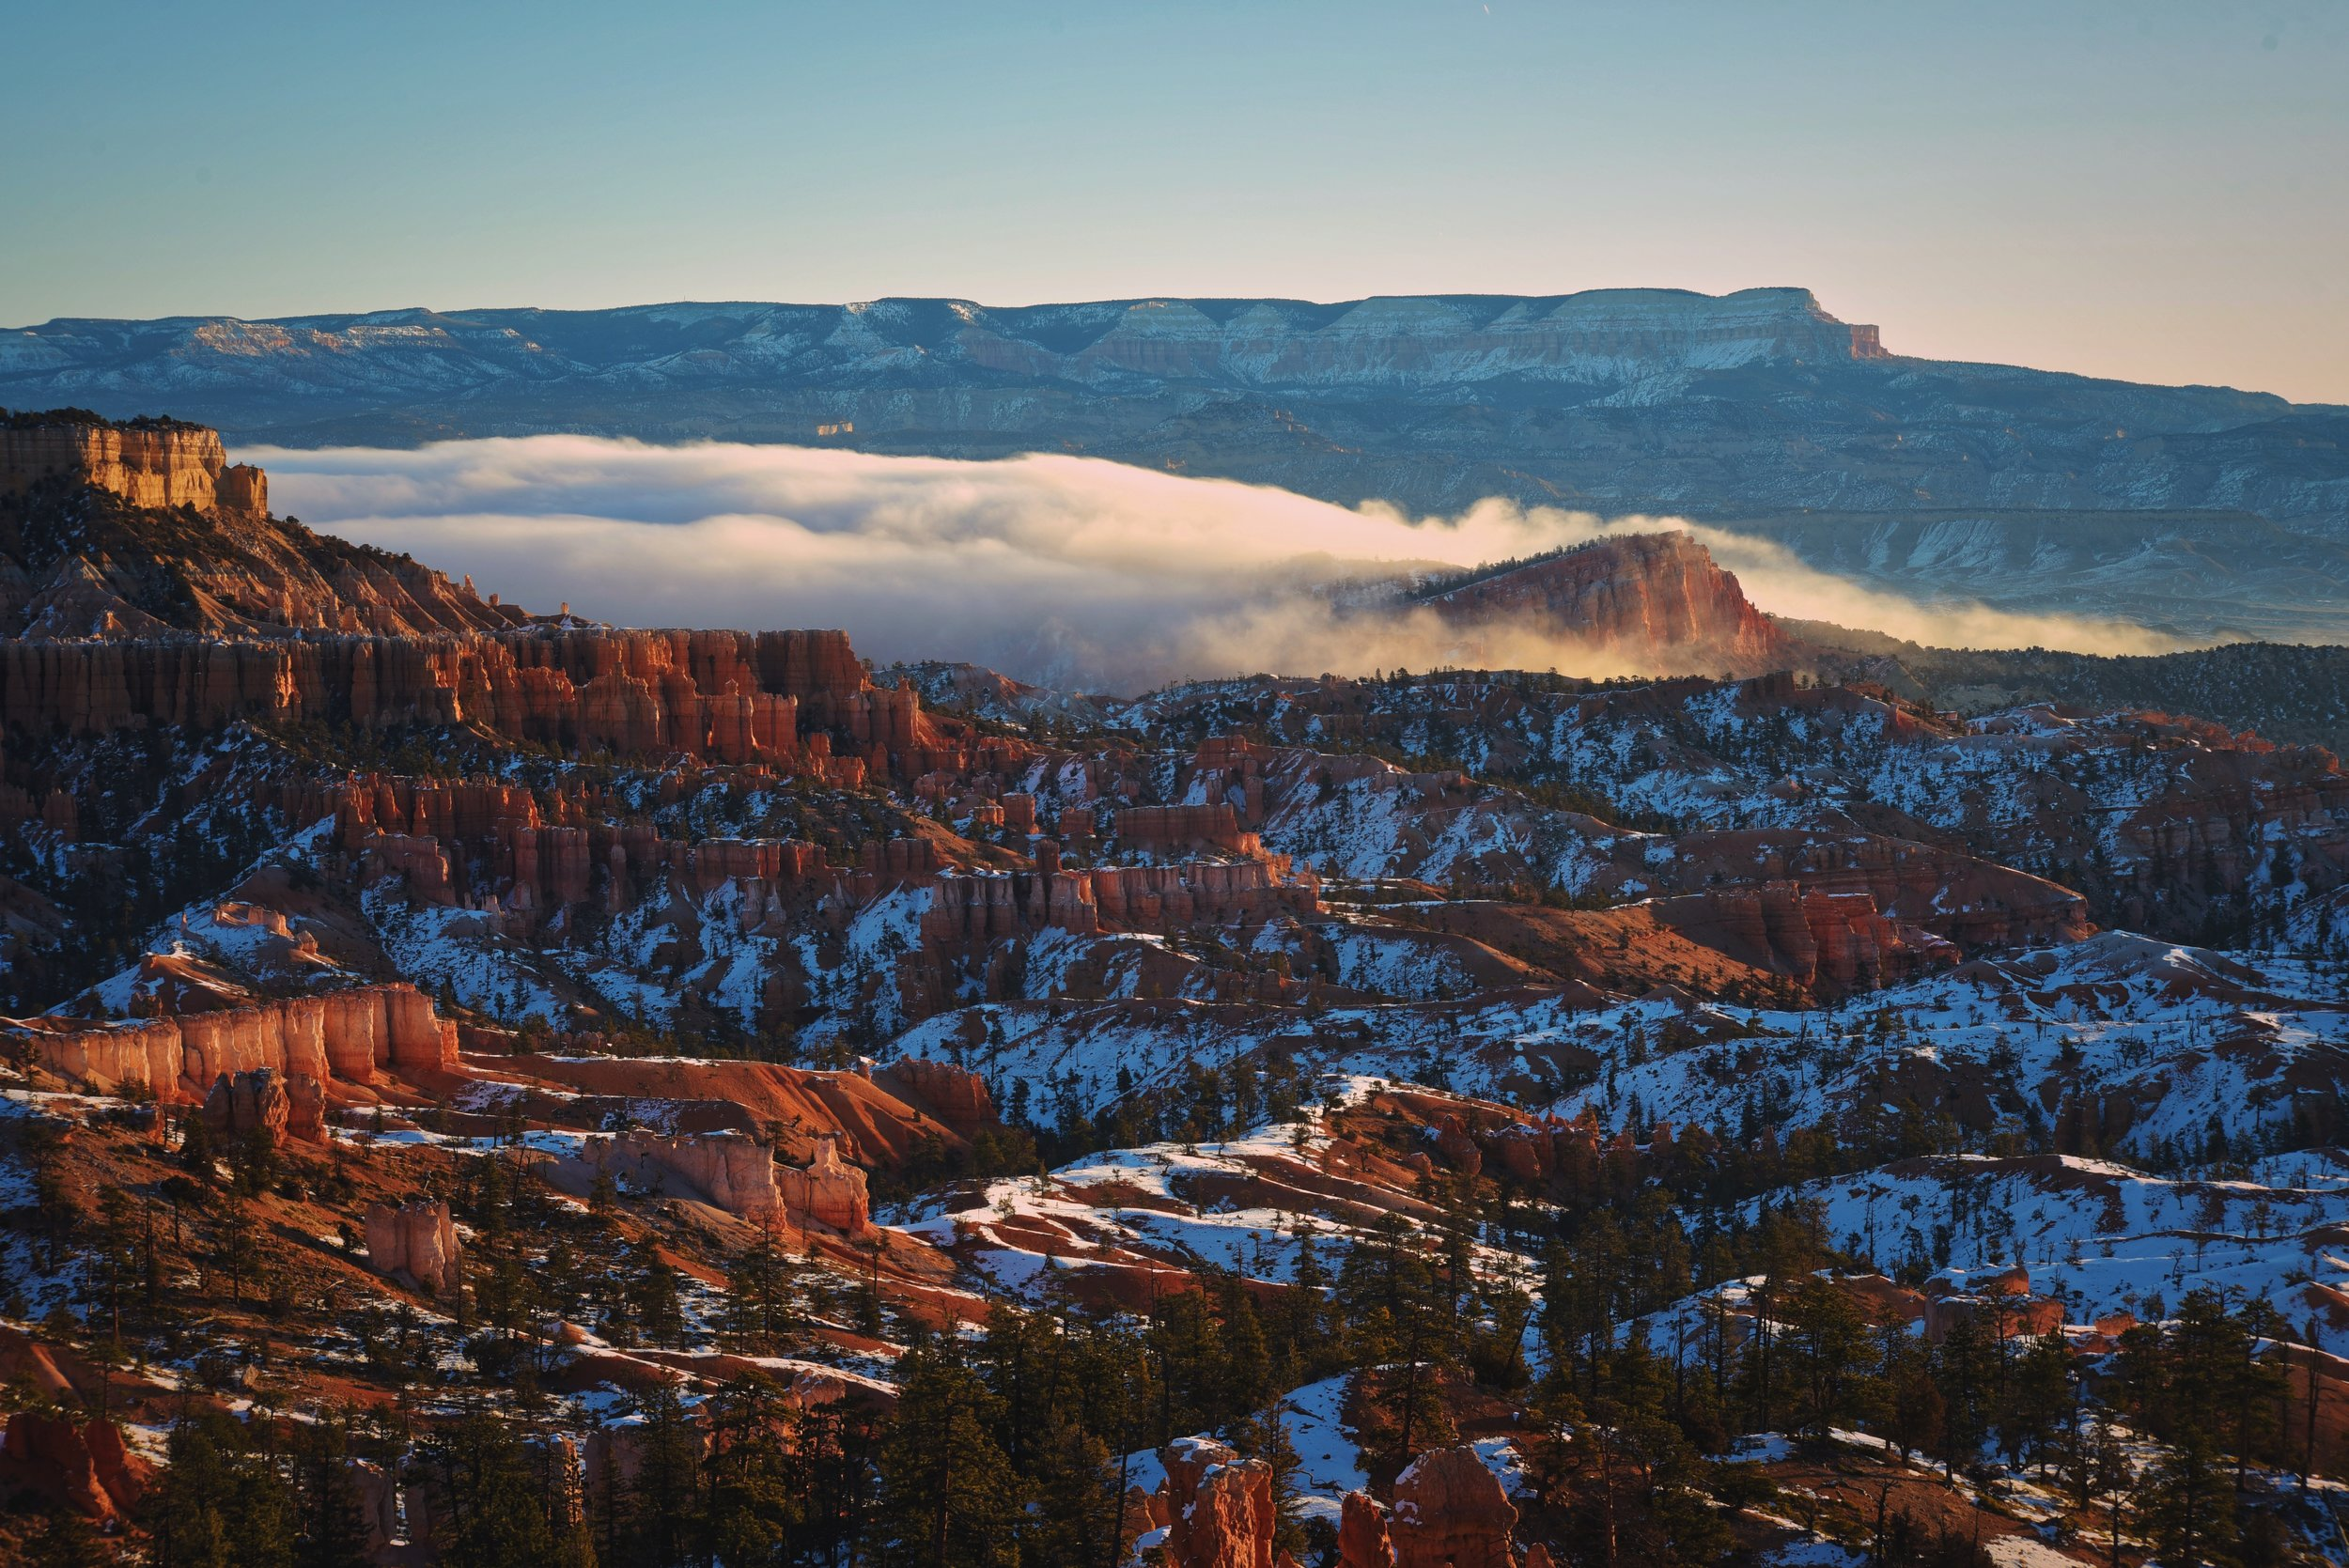 This mist started to surround the Sinking Ship formation across the canyon from us.